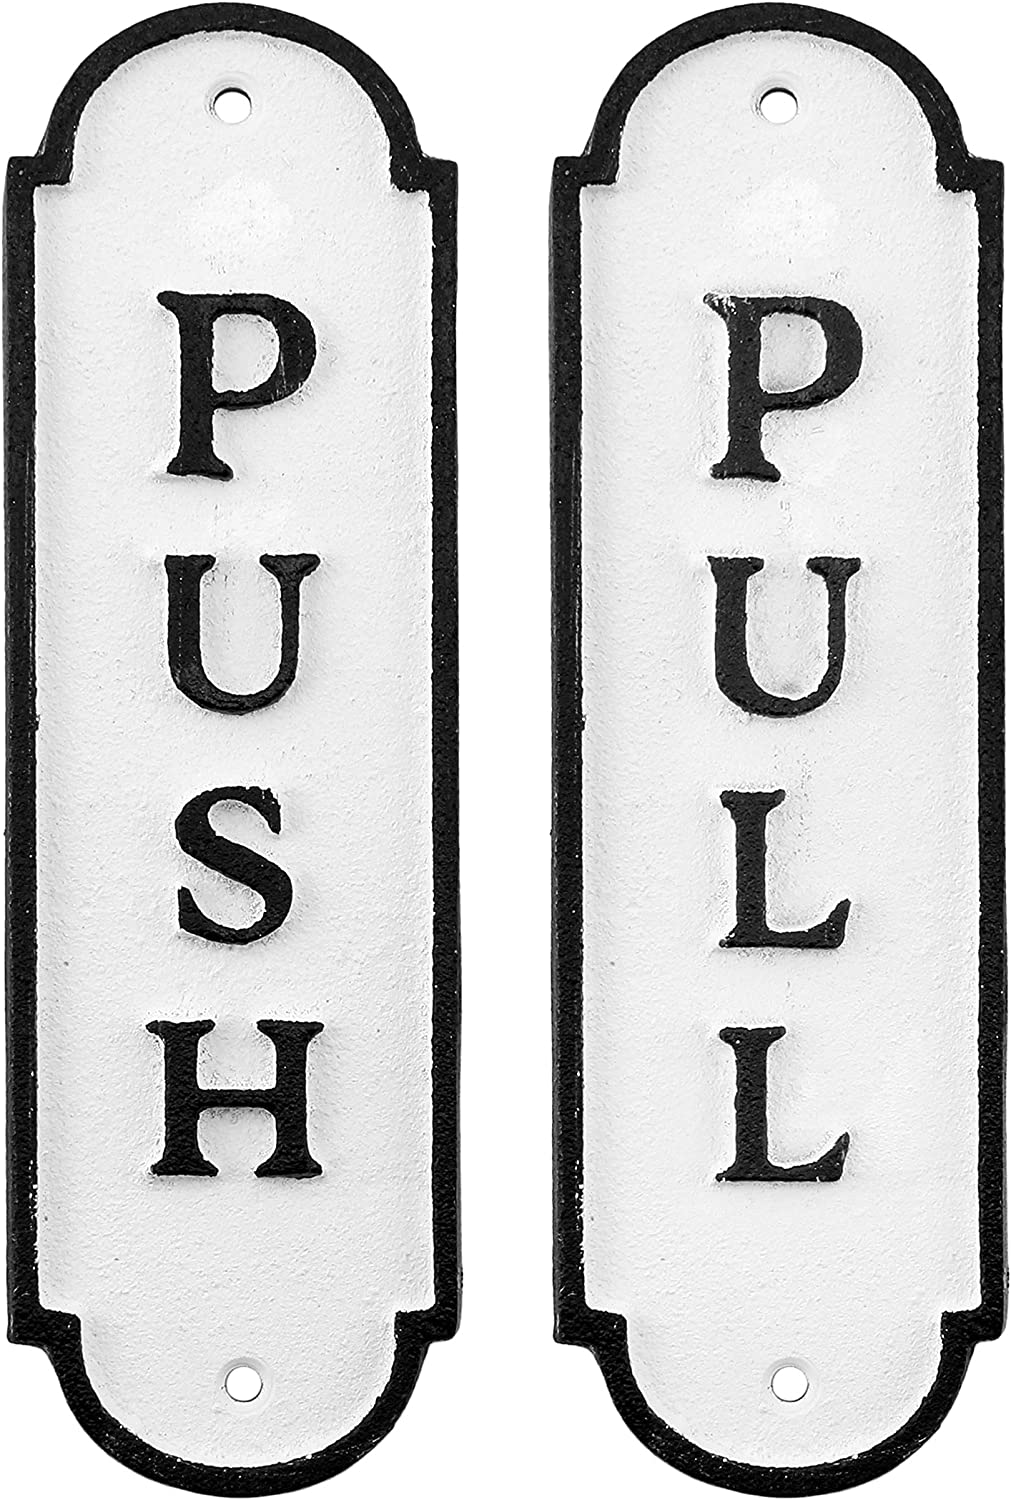 AuldHome Push Pull Door Inventory cleanup selling sale Signs Set of 2 ; Cast Farmhouse Iron Oakland Mall St